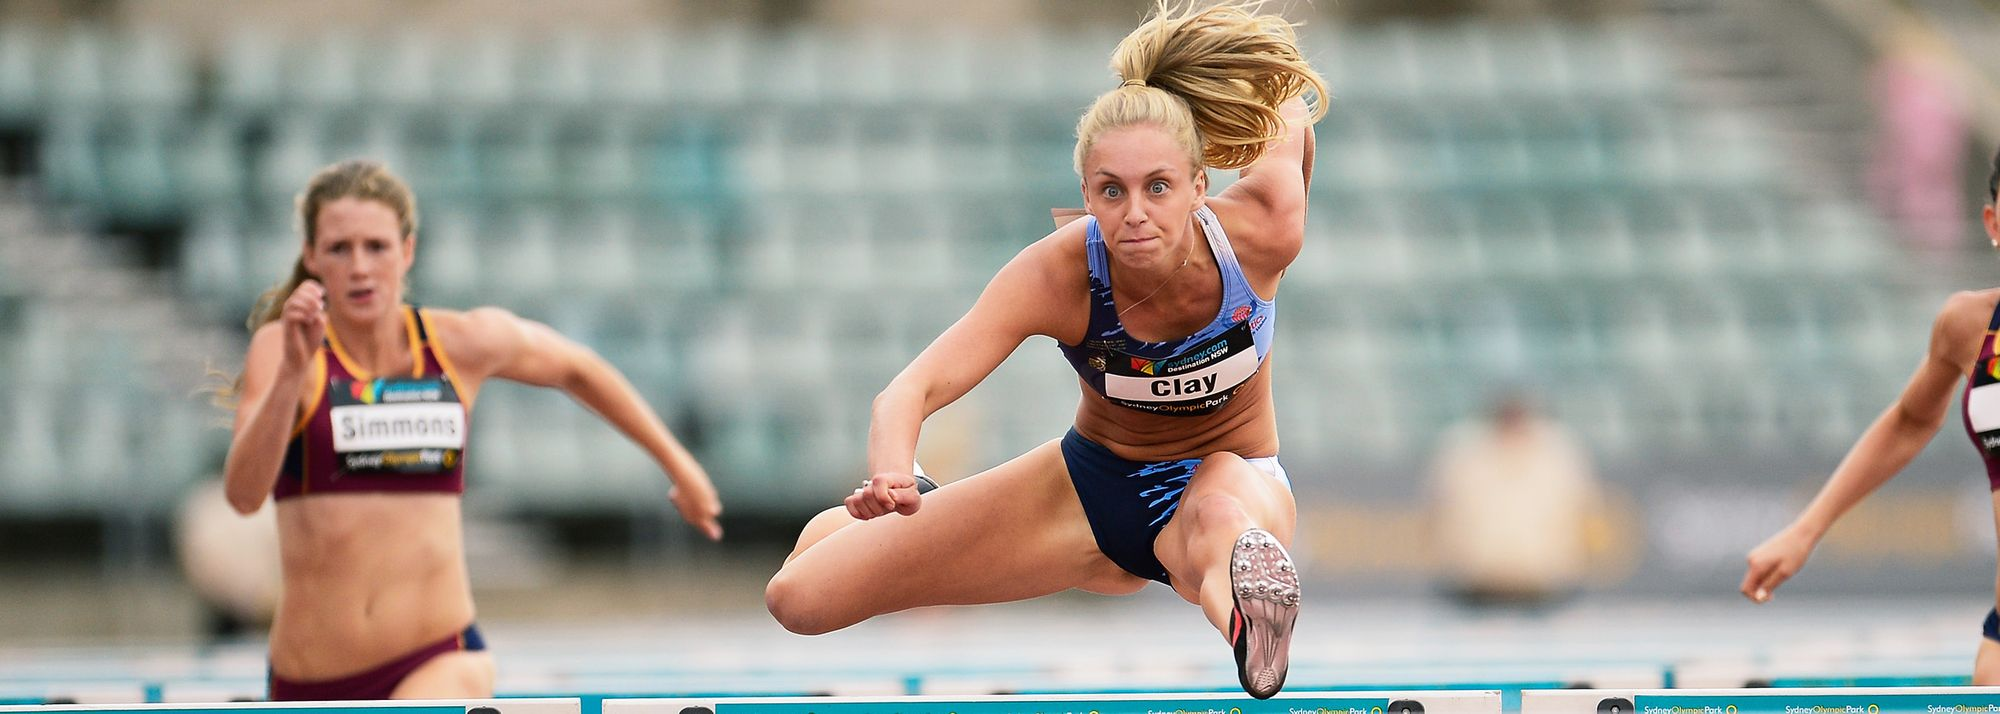 When Sally Pearson abruptly announced her retirement last August, it seemed Australian women's hurdling would be waiting some time for another athlete capable of reaching global championship finals.